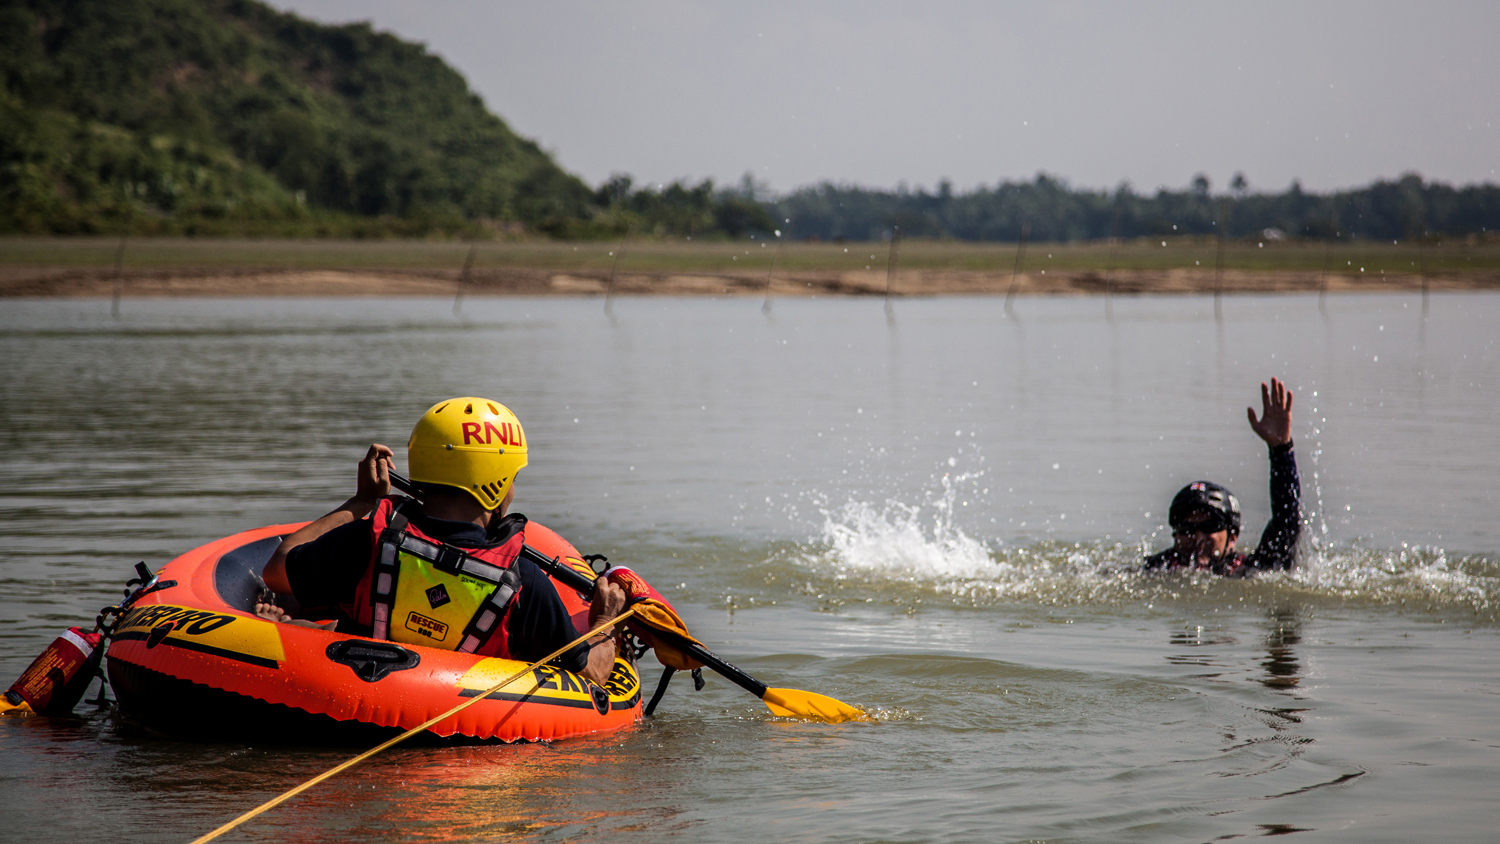 A flood rescue training session on a river in Bangladesh